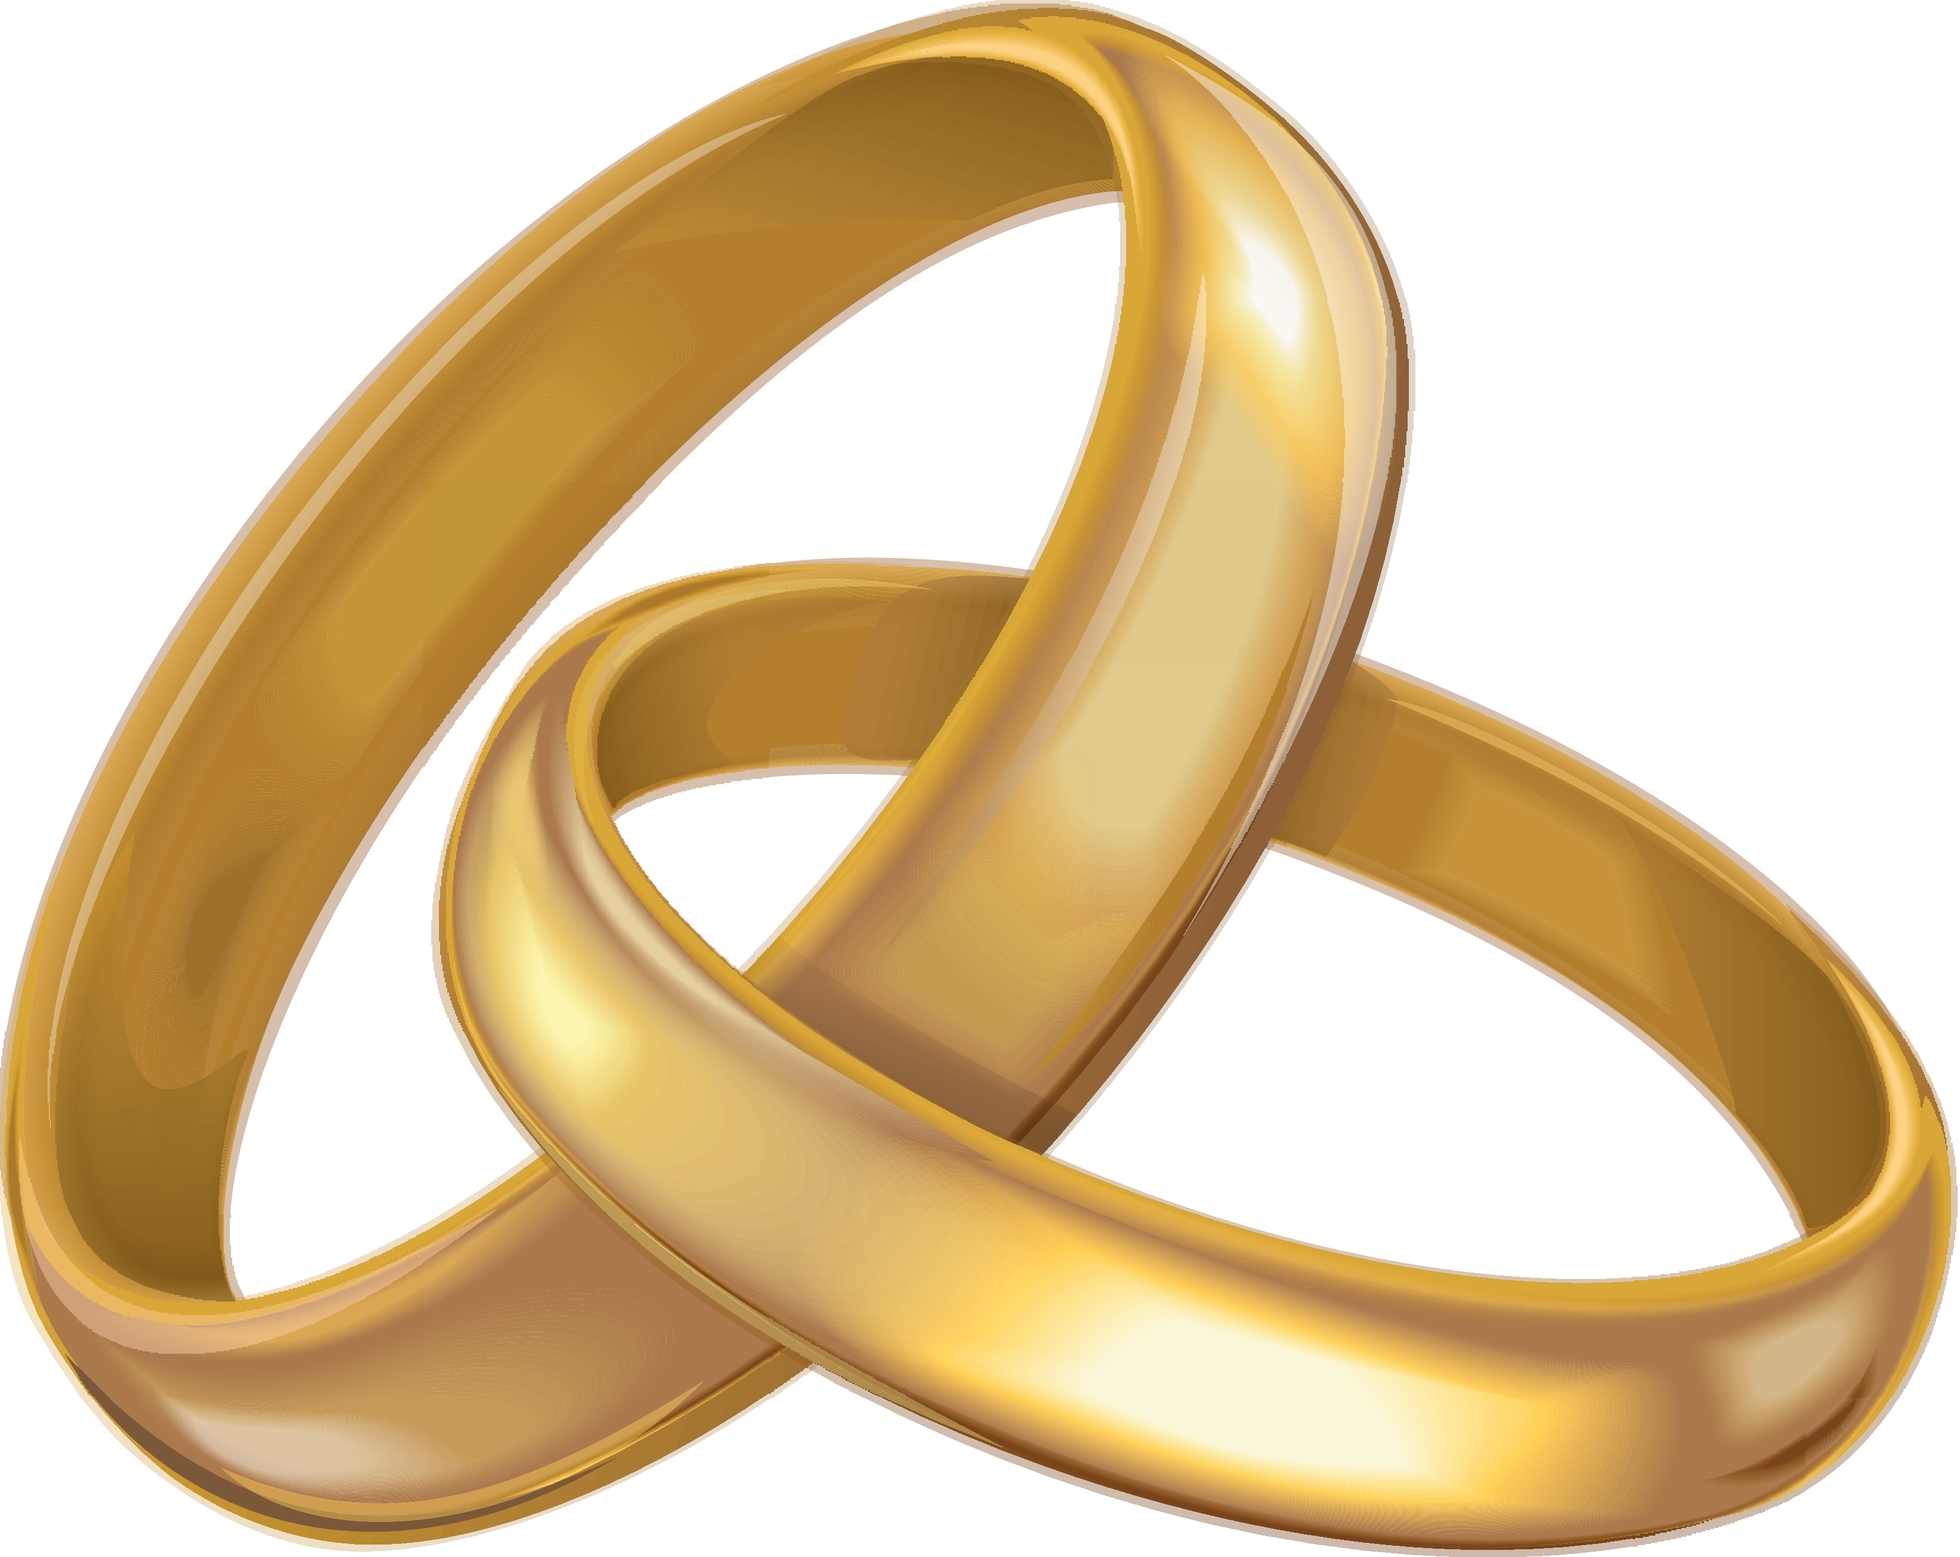 Double wedding rings clipart free clipart library stock Double Wedding Band Clipart (15+) clipart library stock